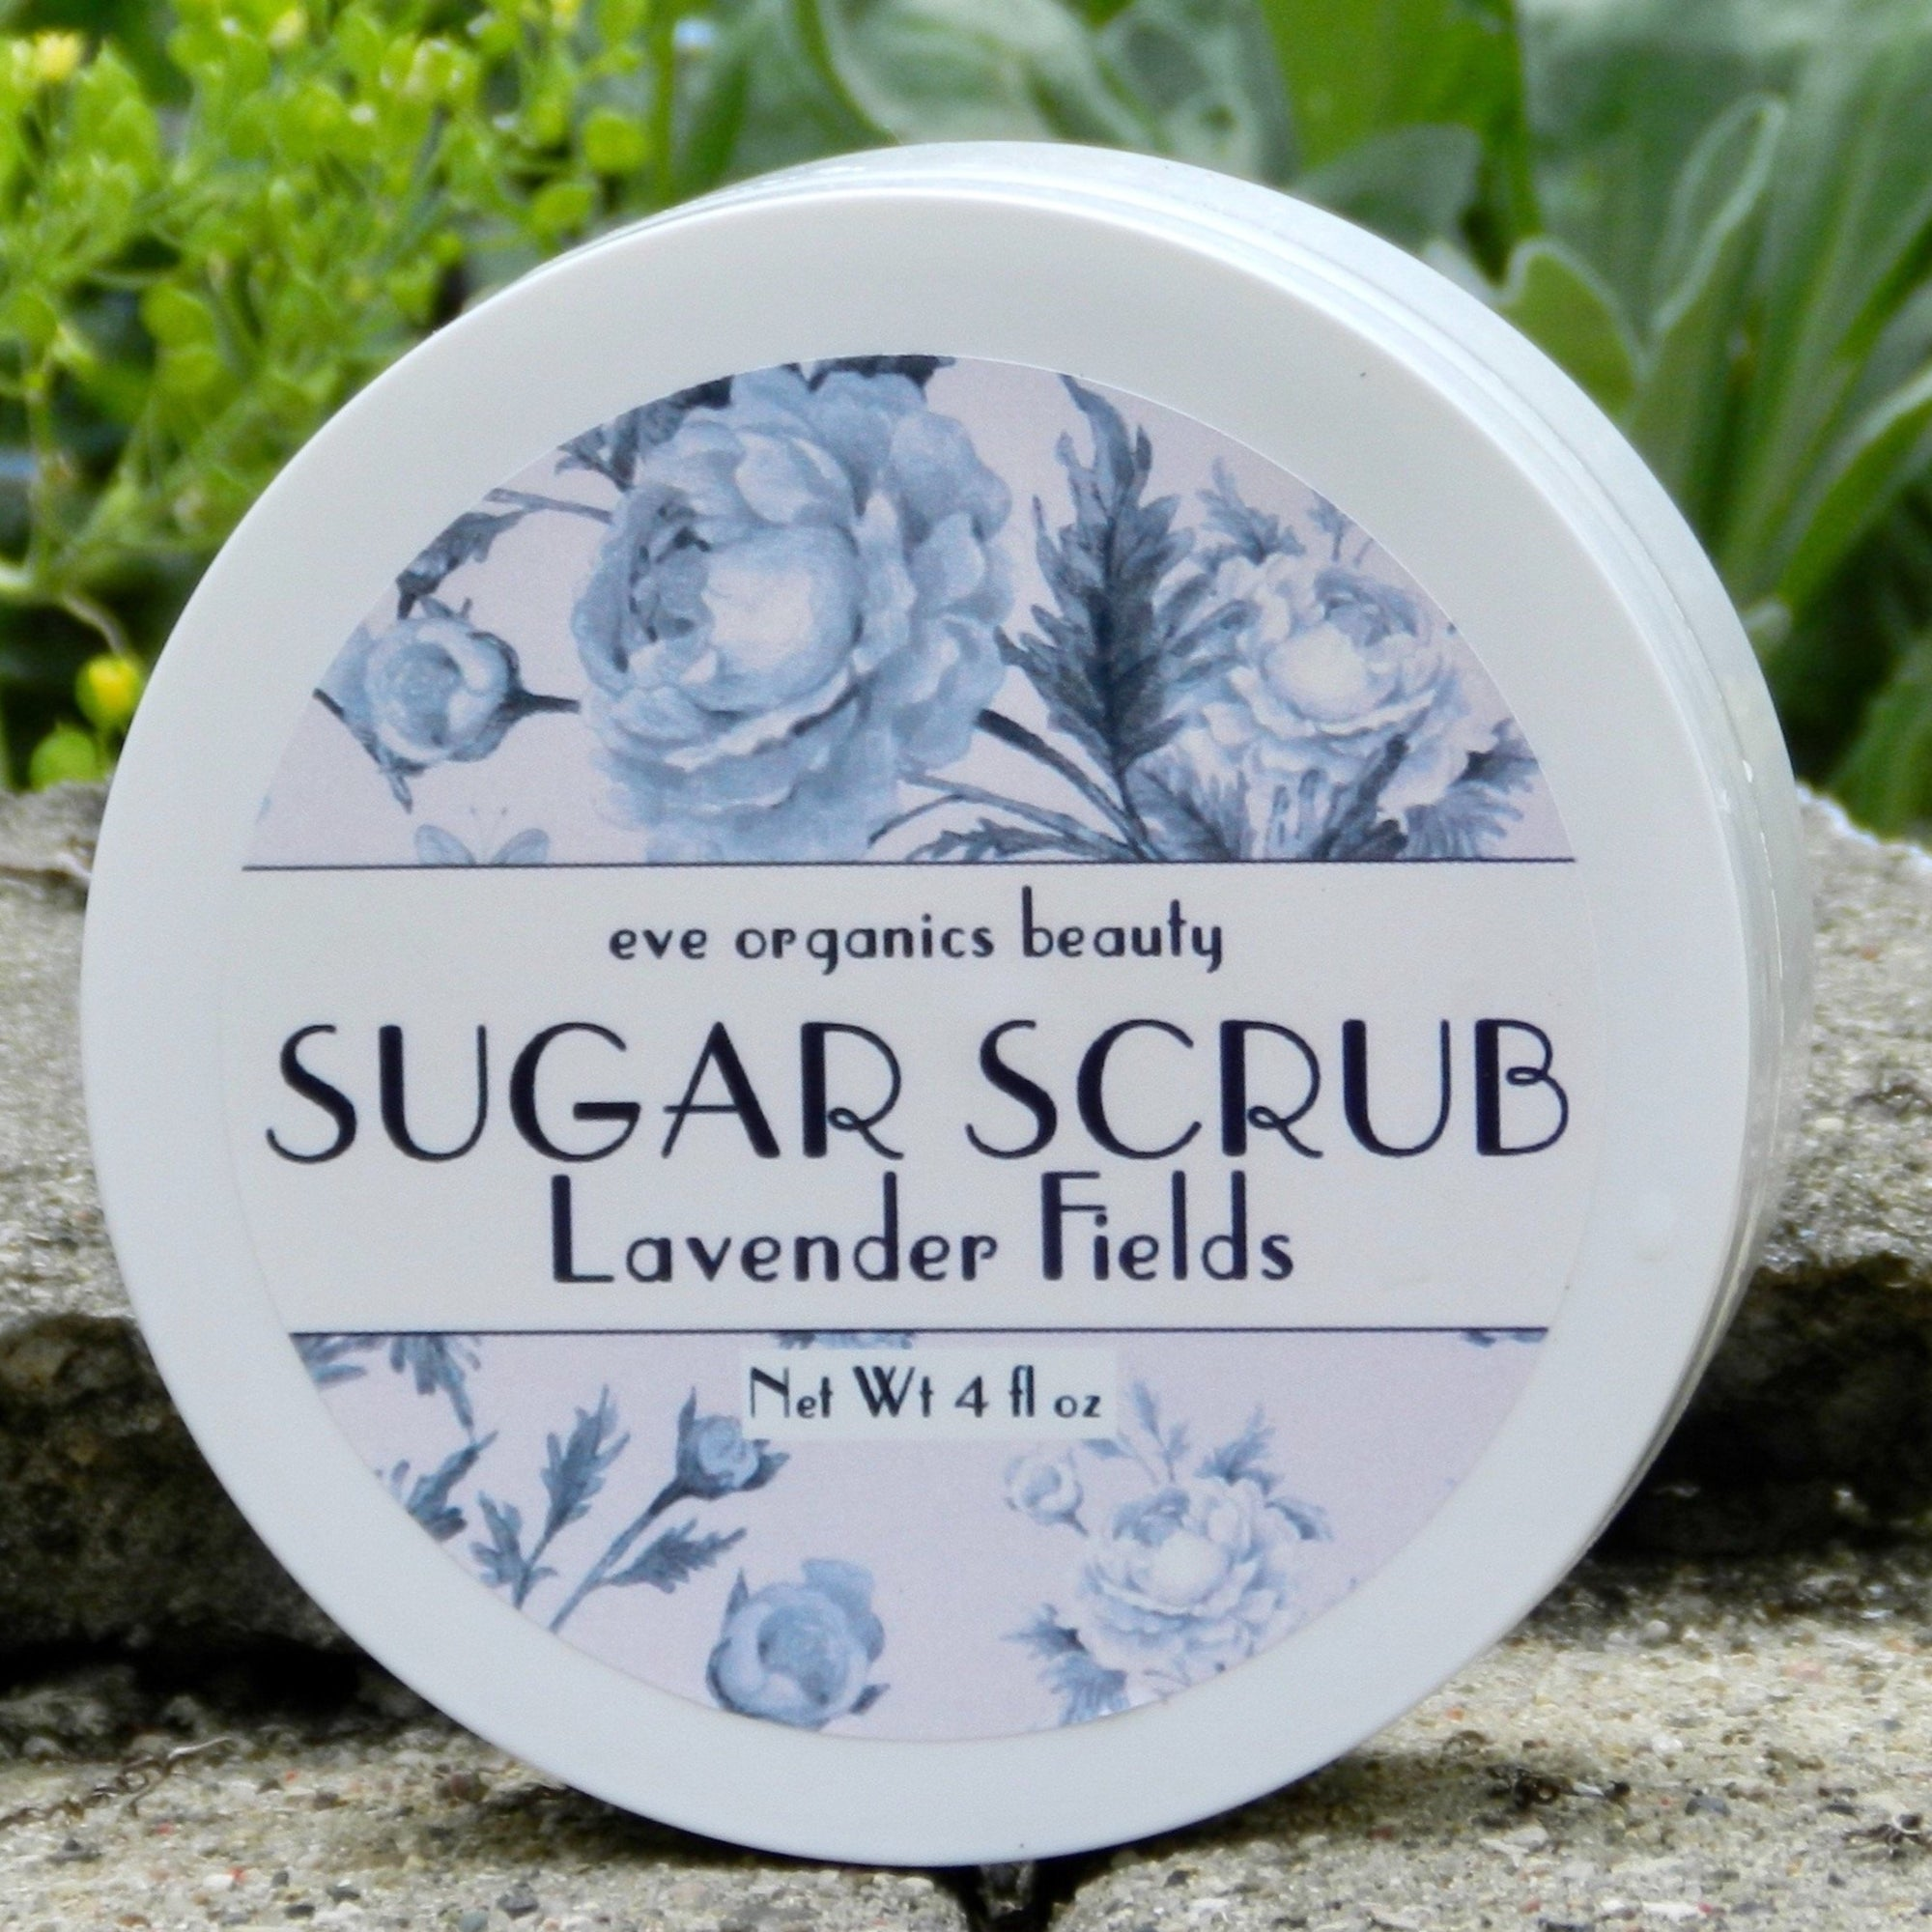 NEW Sugar Scrub LAVENDER FIELDS for BODY